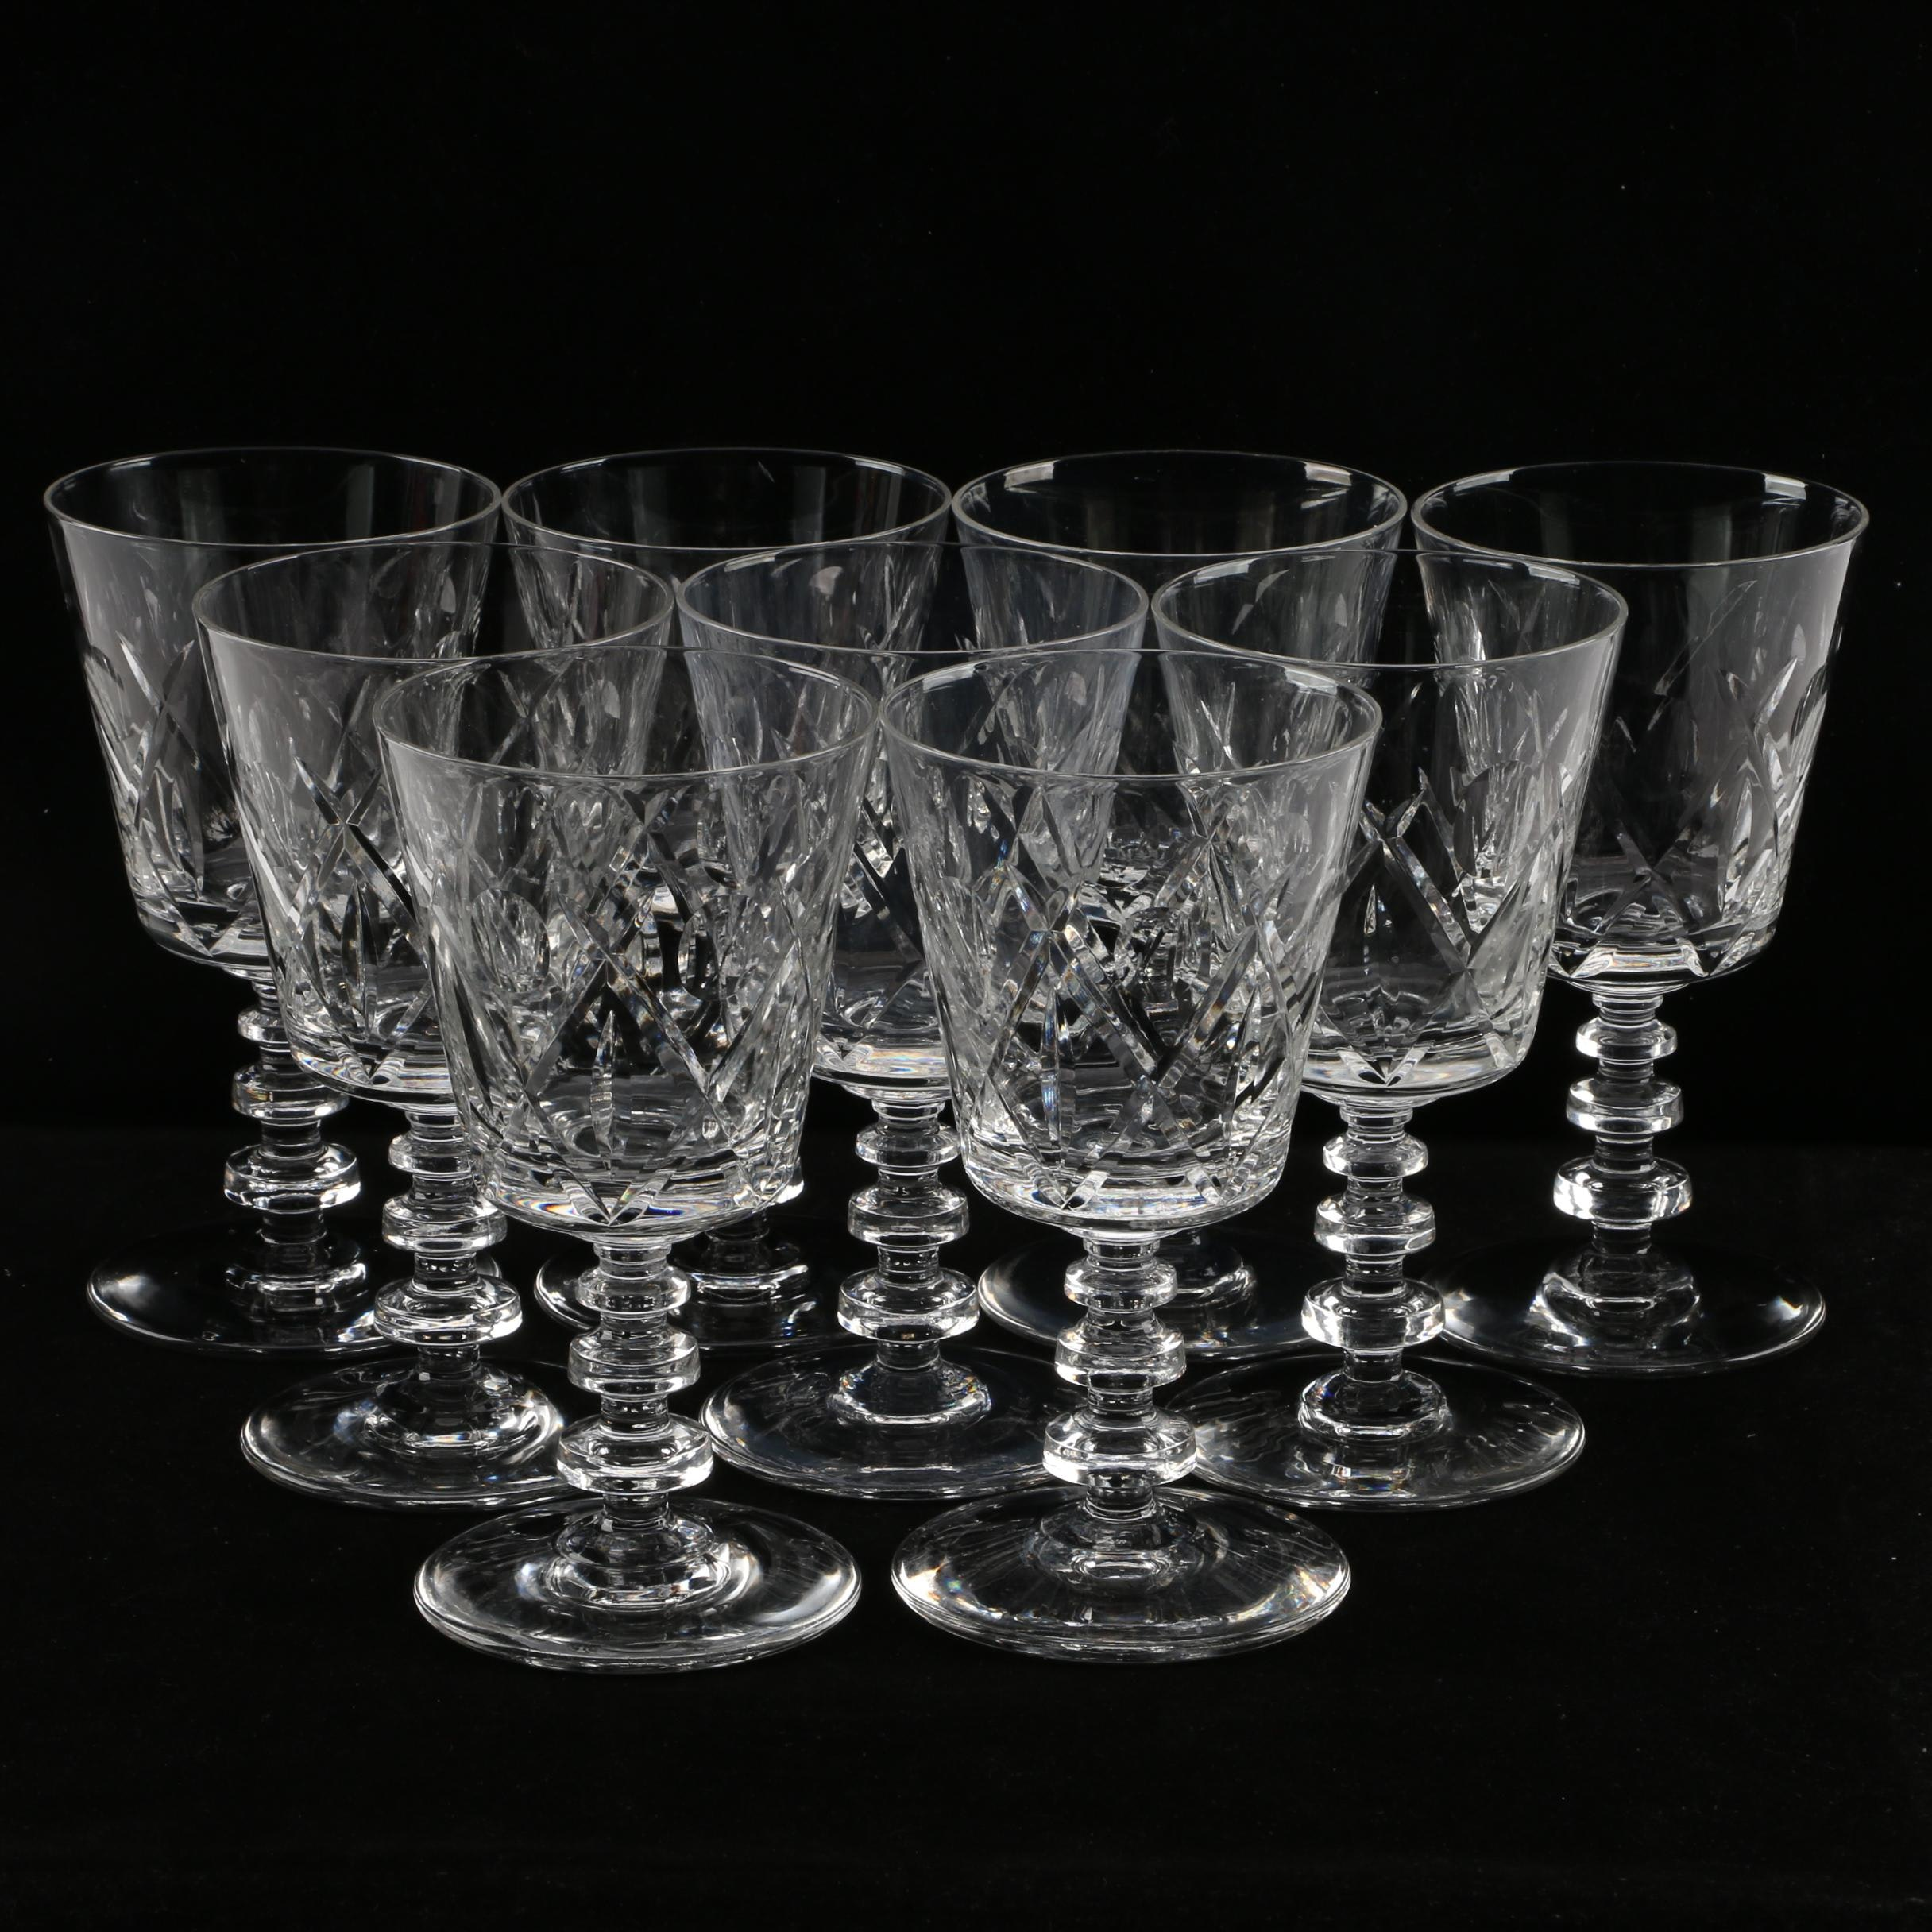 Collection of Vintage Hand-Cut Crystal Stemware